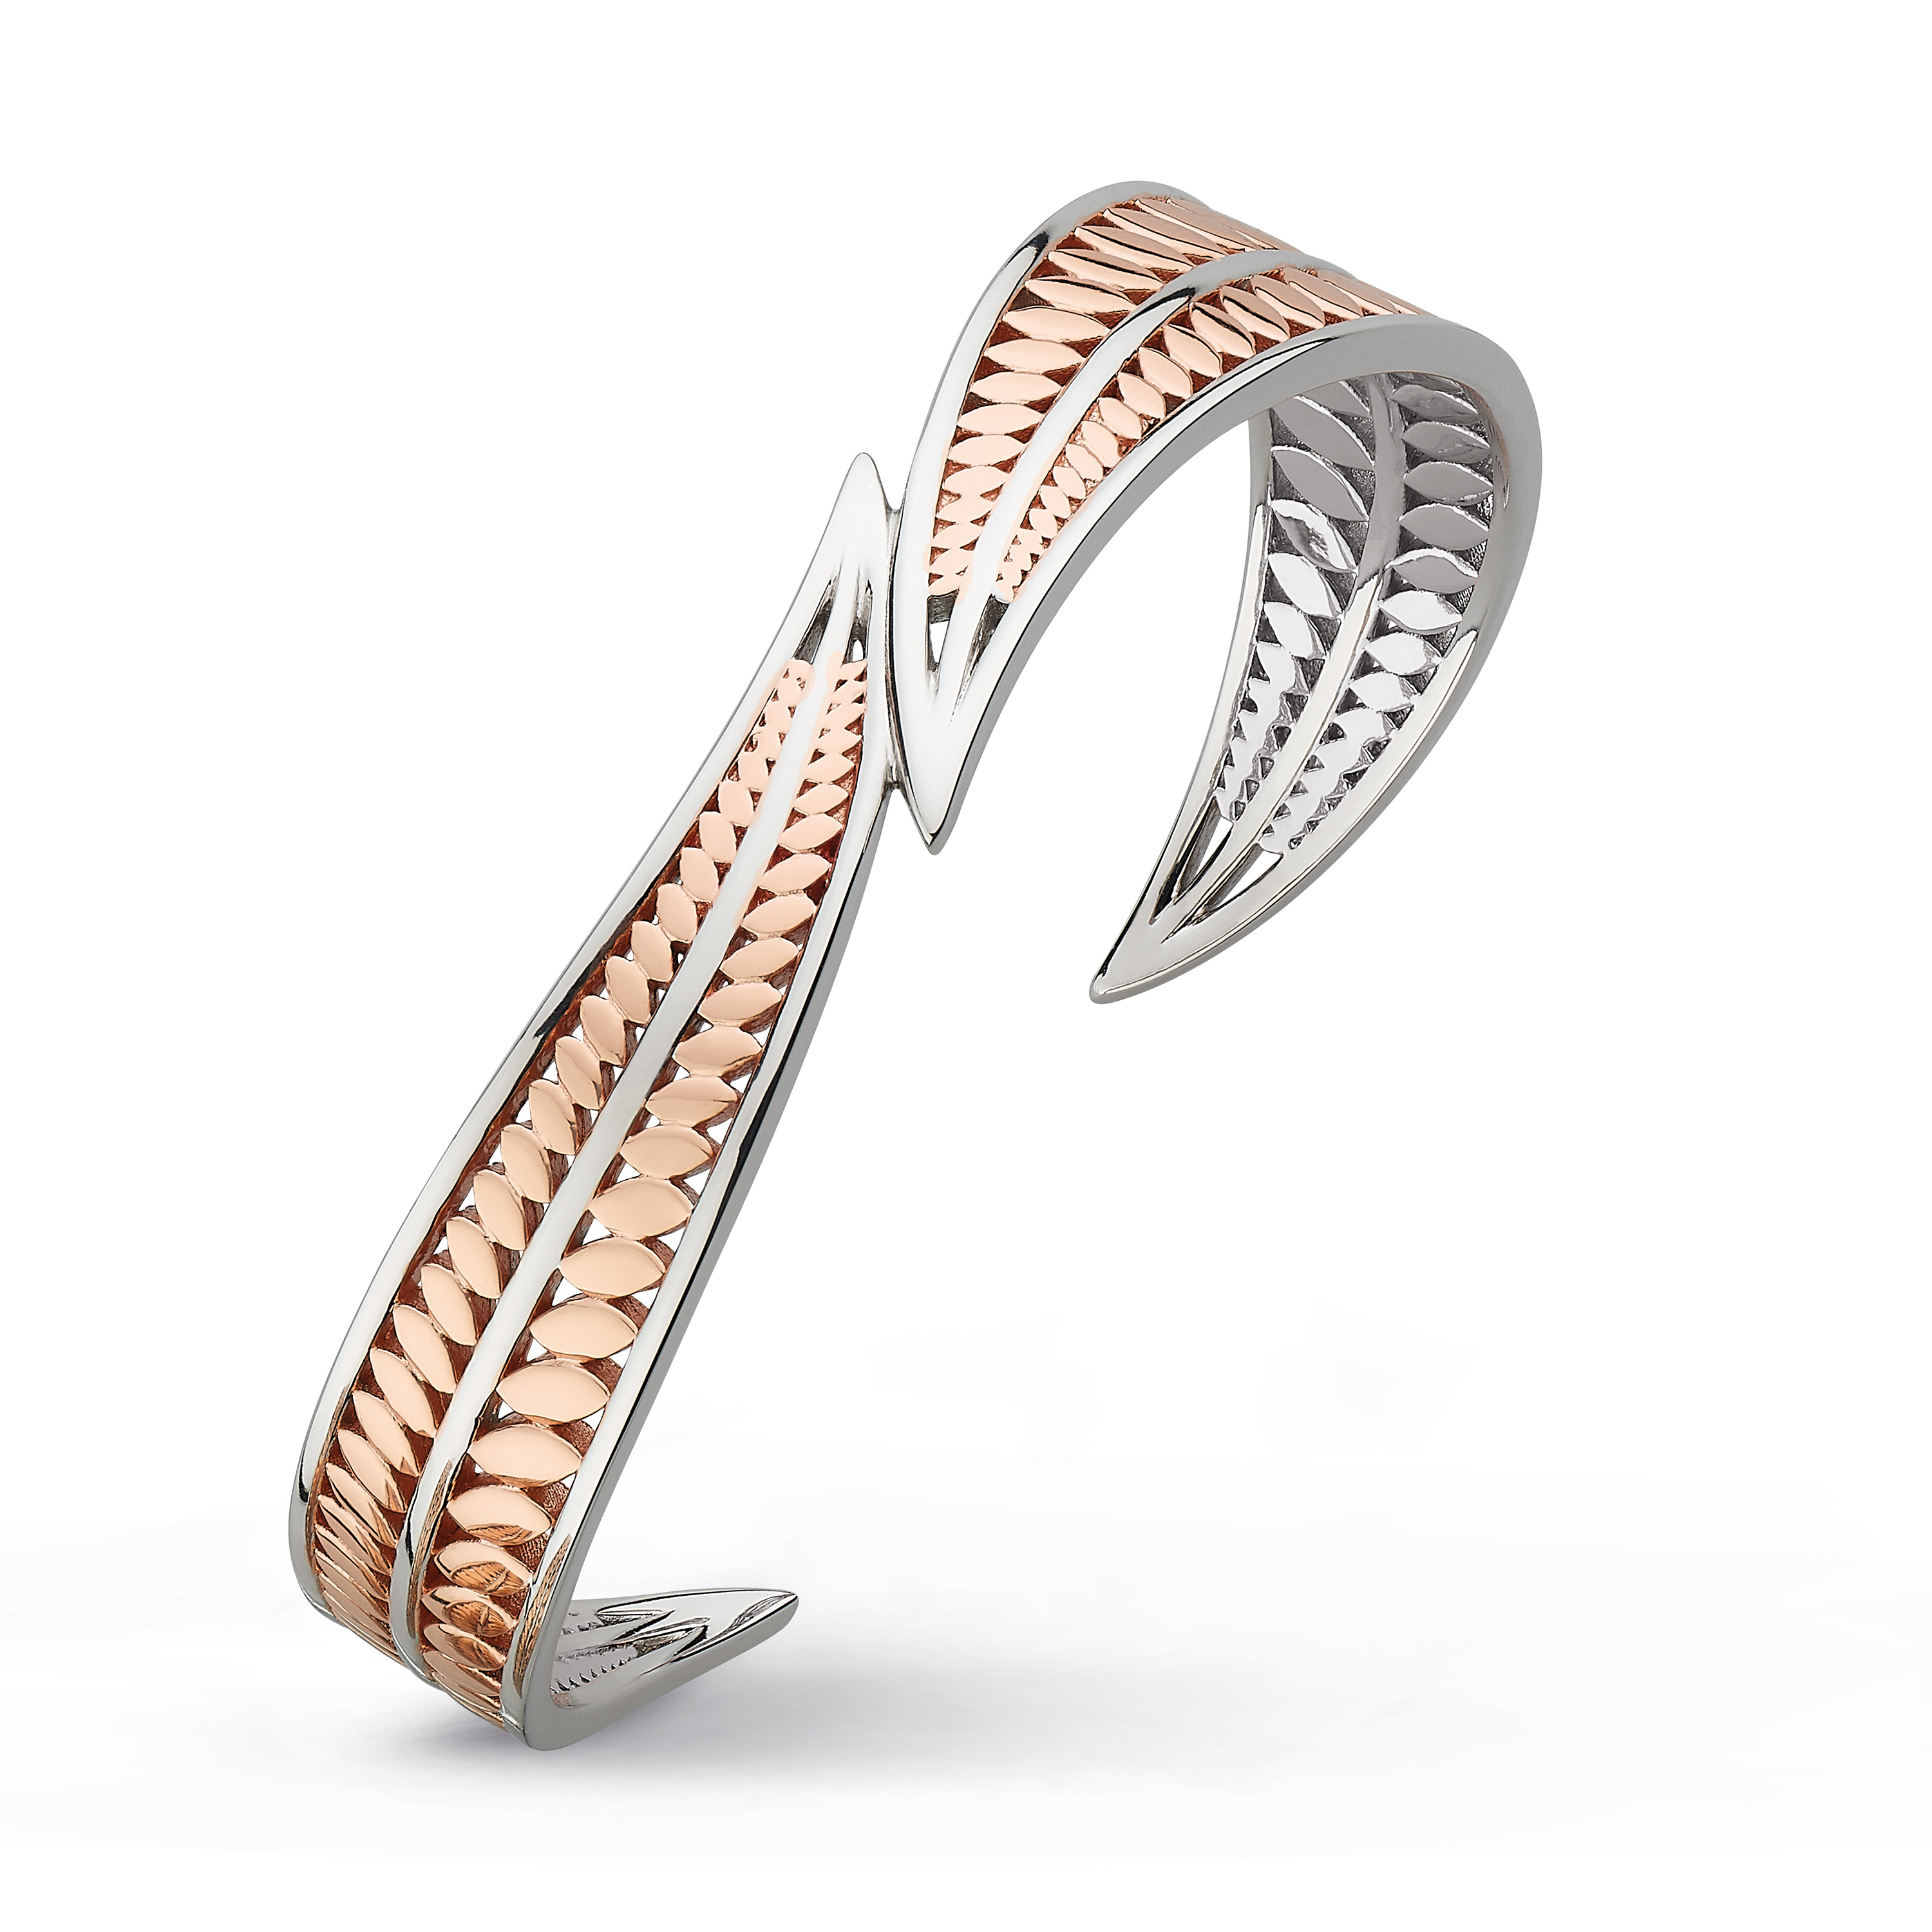 Sterling silver and rose gold plate bangle